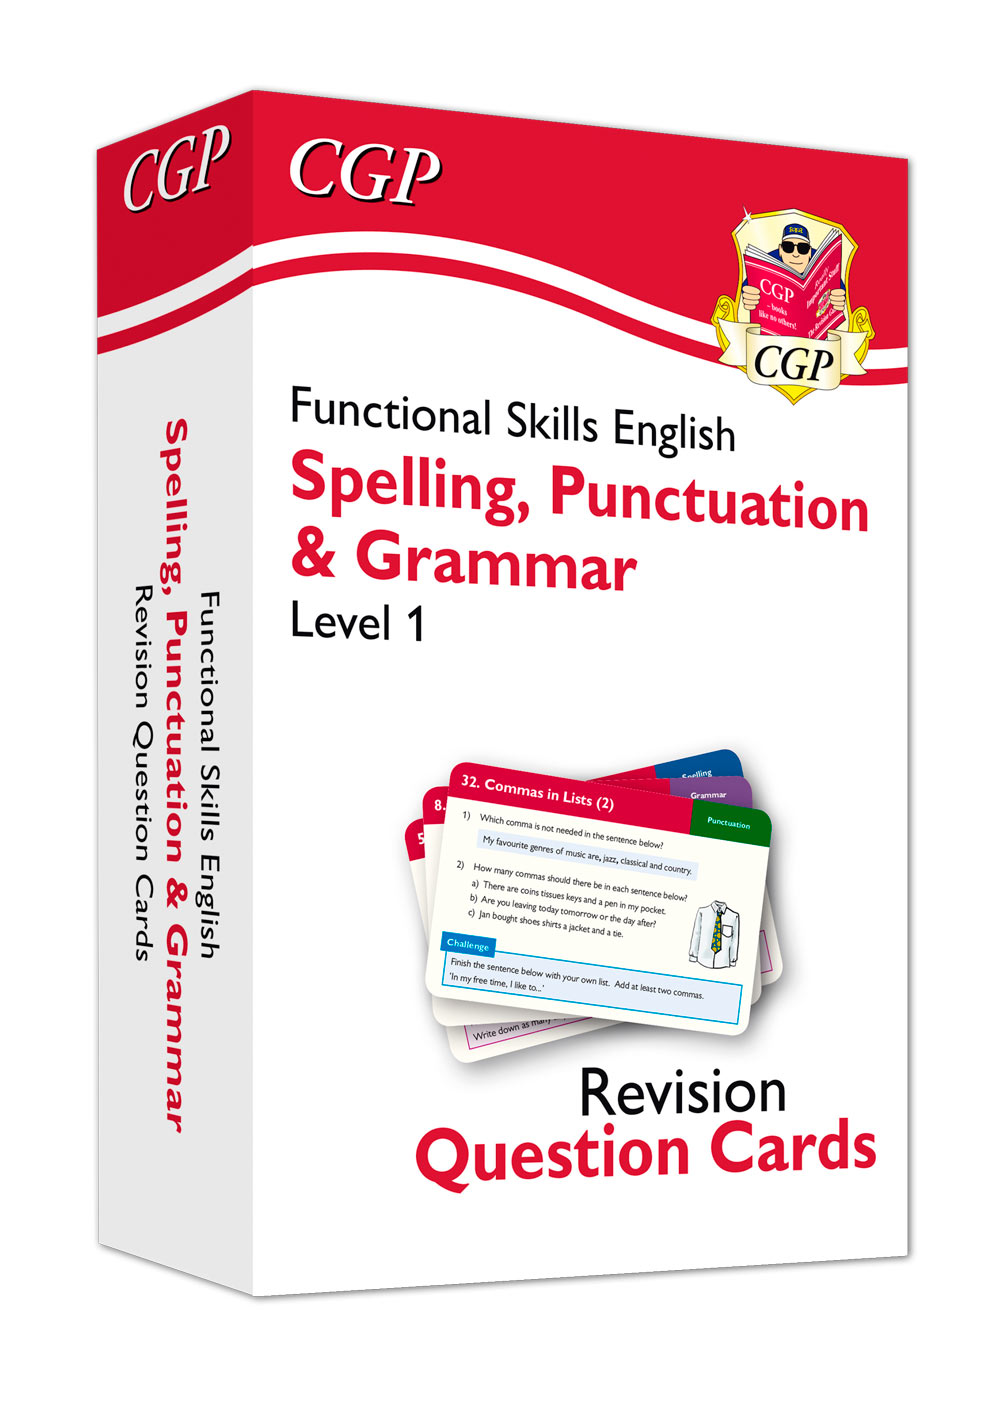 E1GFA1 - New Functional Skills English Revision Question Cards: Spelling, Punctuation & Grammar - Le